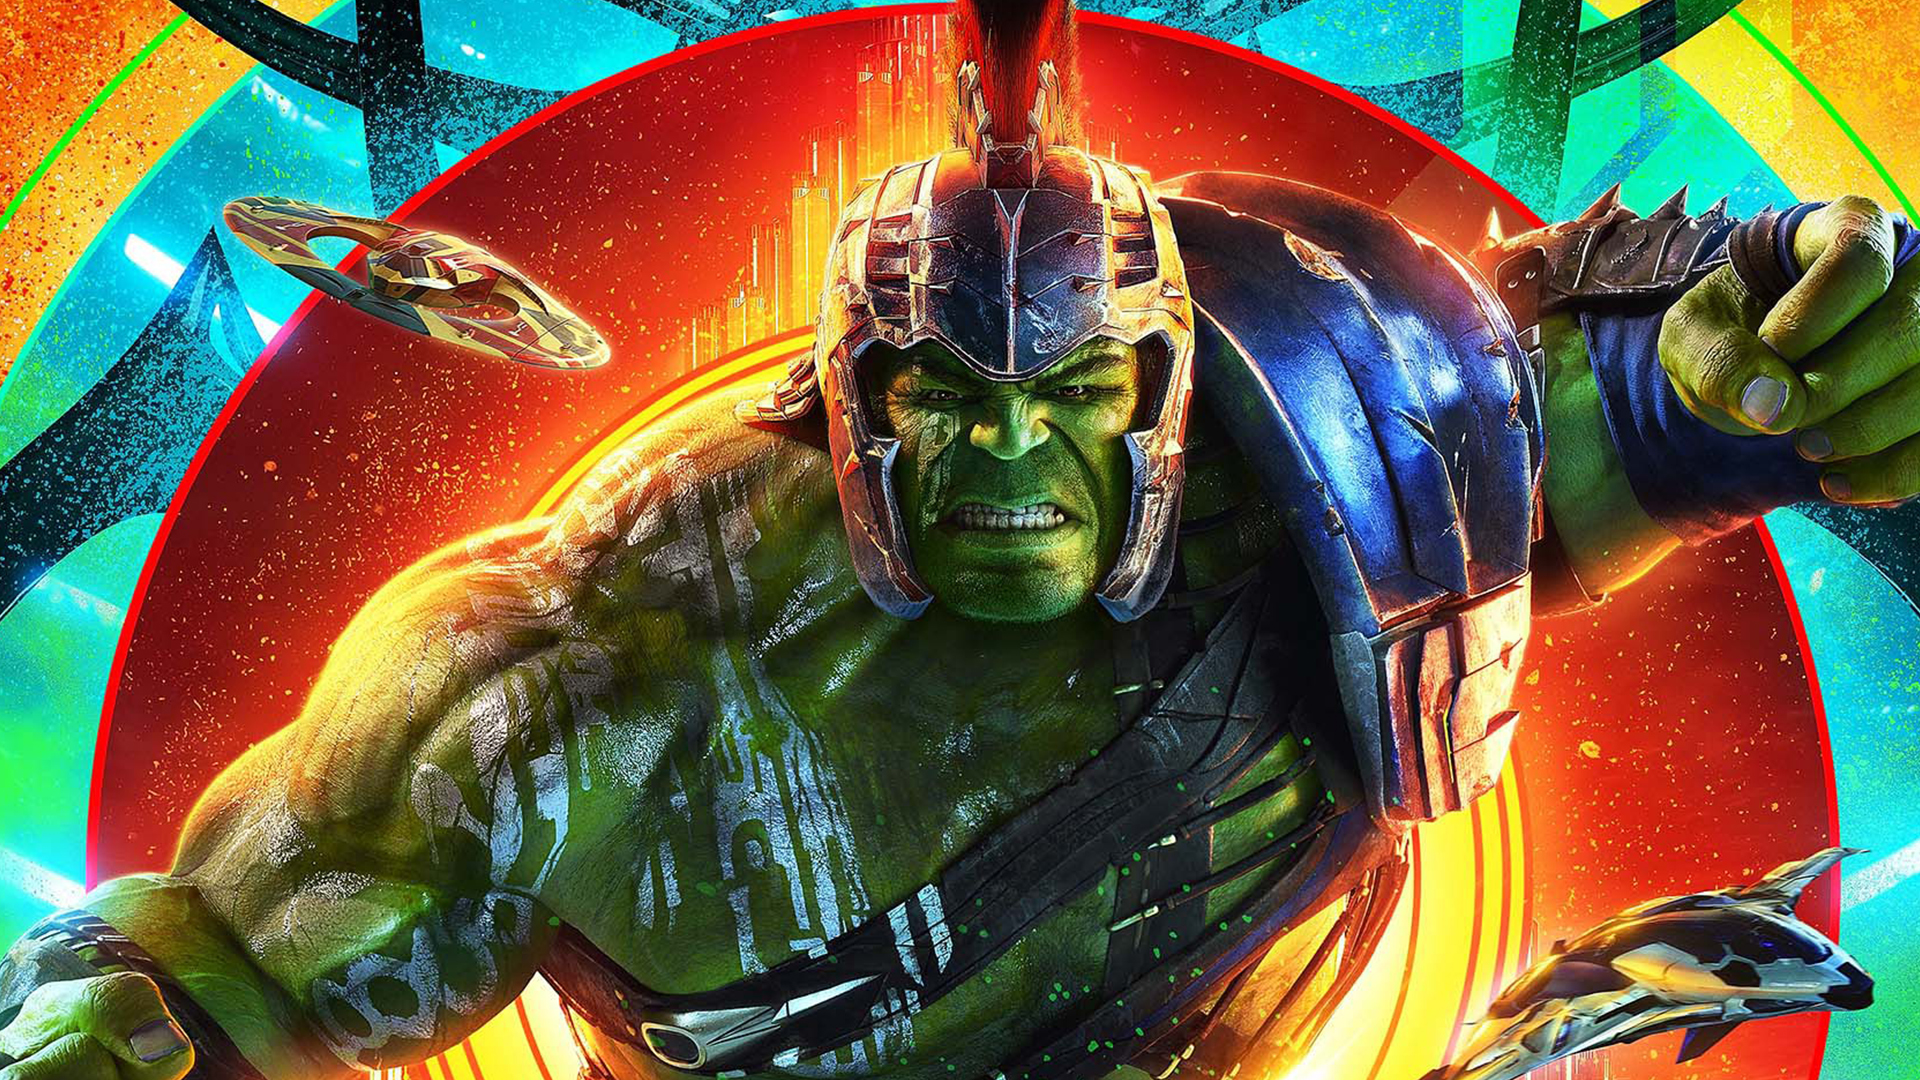 hulk in thor ragnarok 2017, hd movies, 4k wallpapers, images